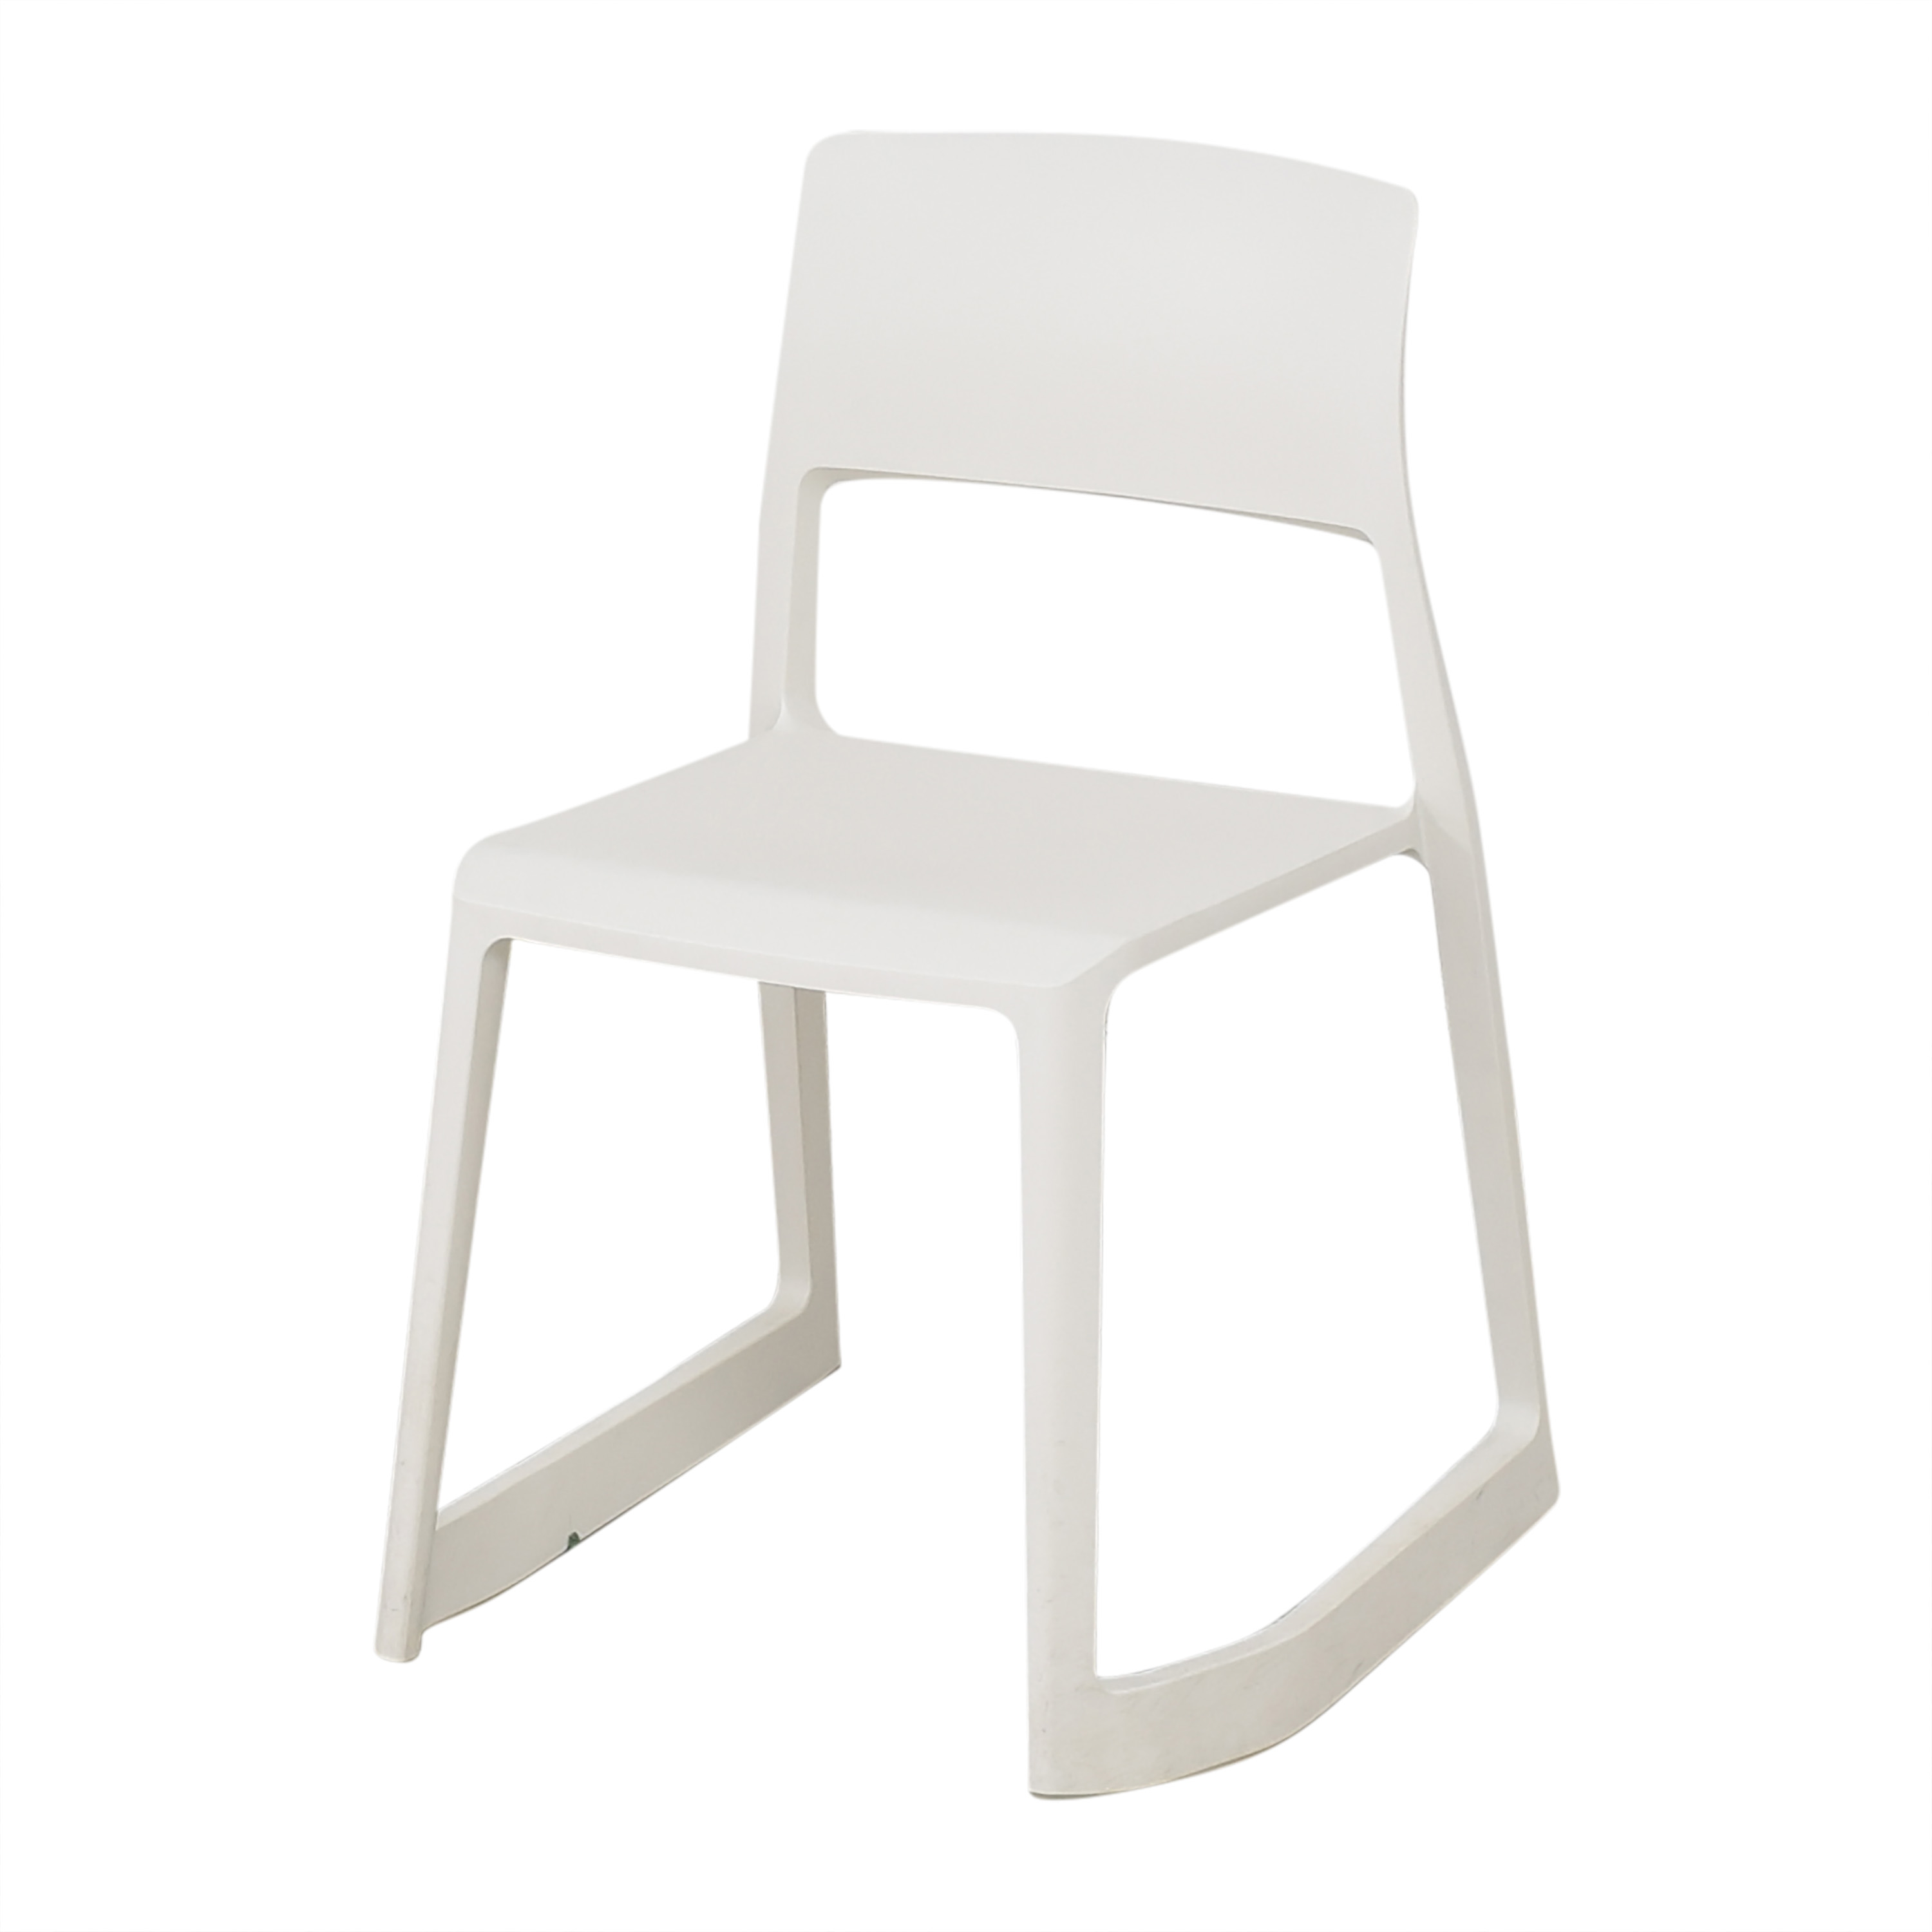 buy Vitra Tip Ton Chairs Vitra Dining Chairs